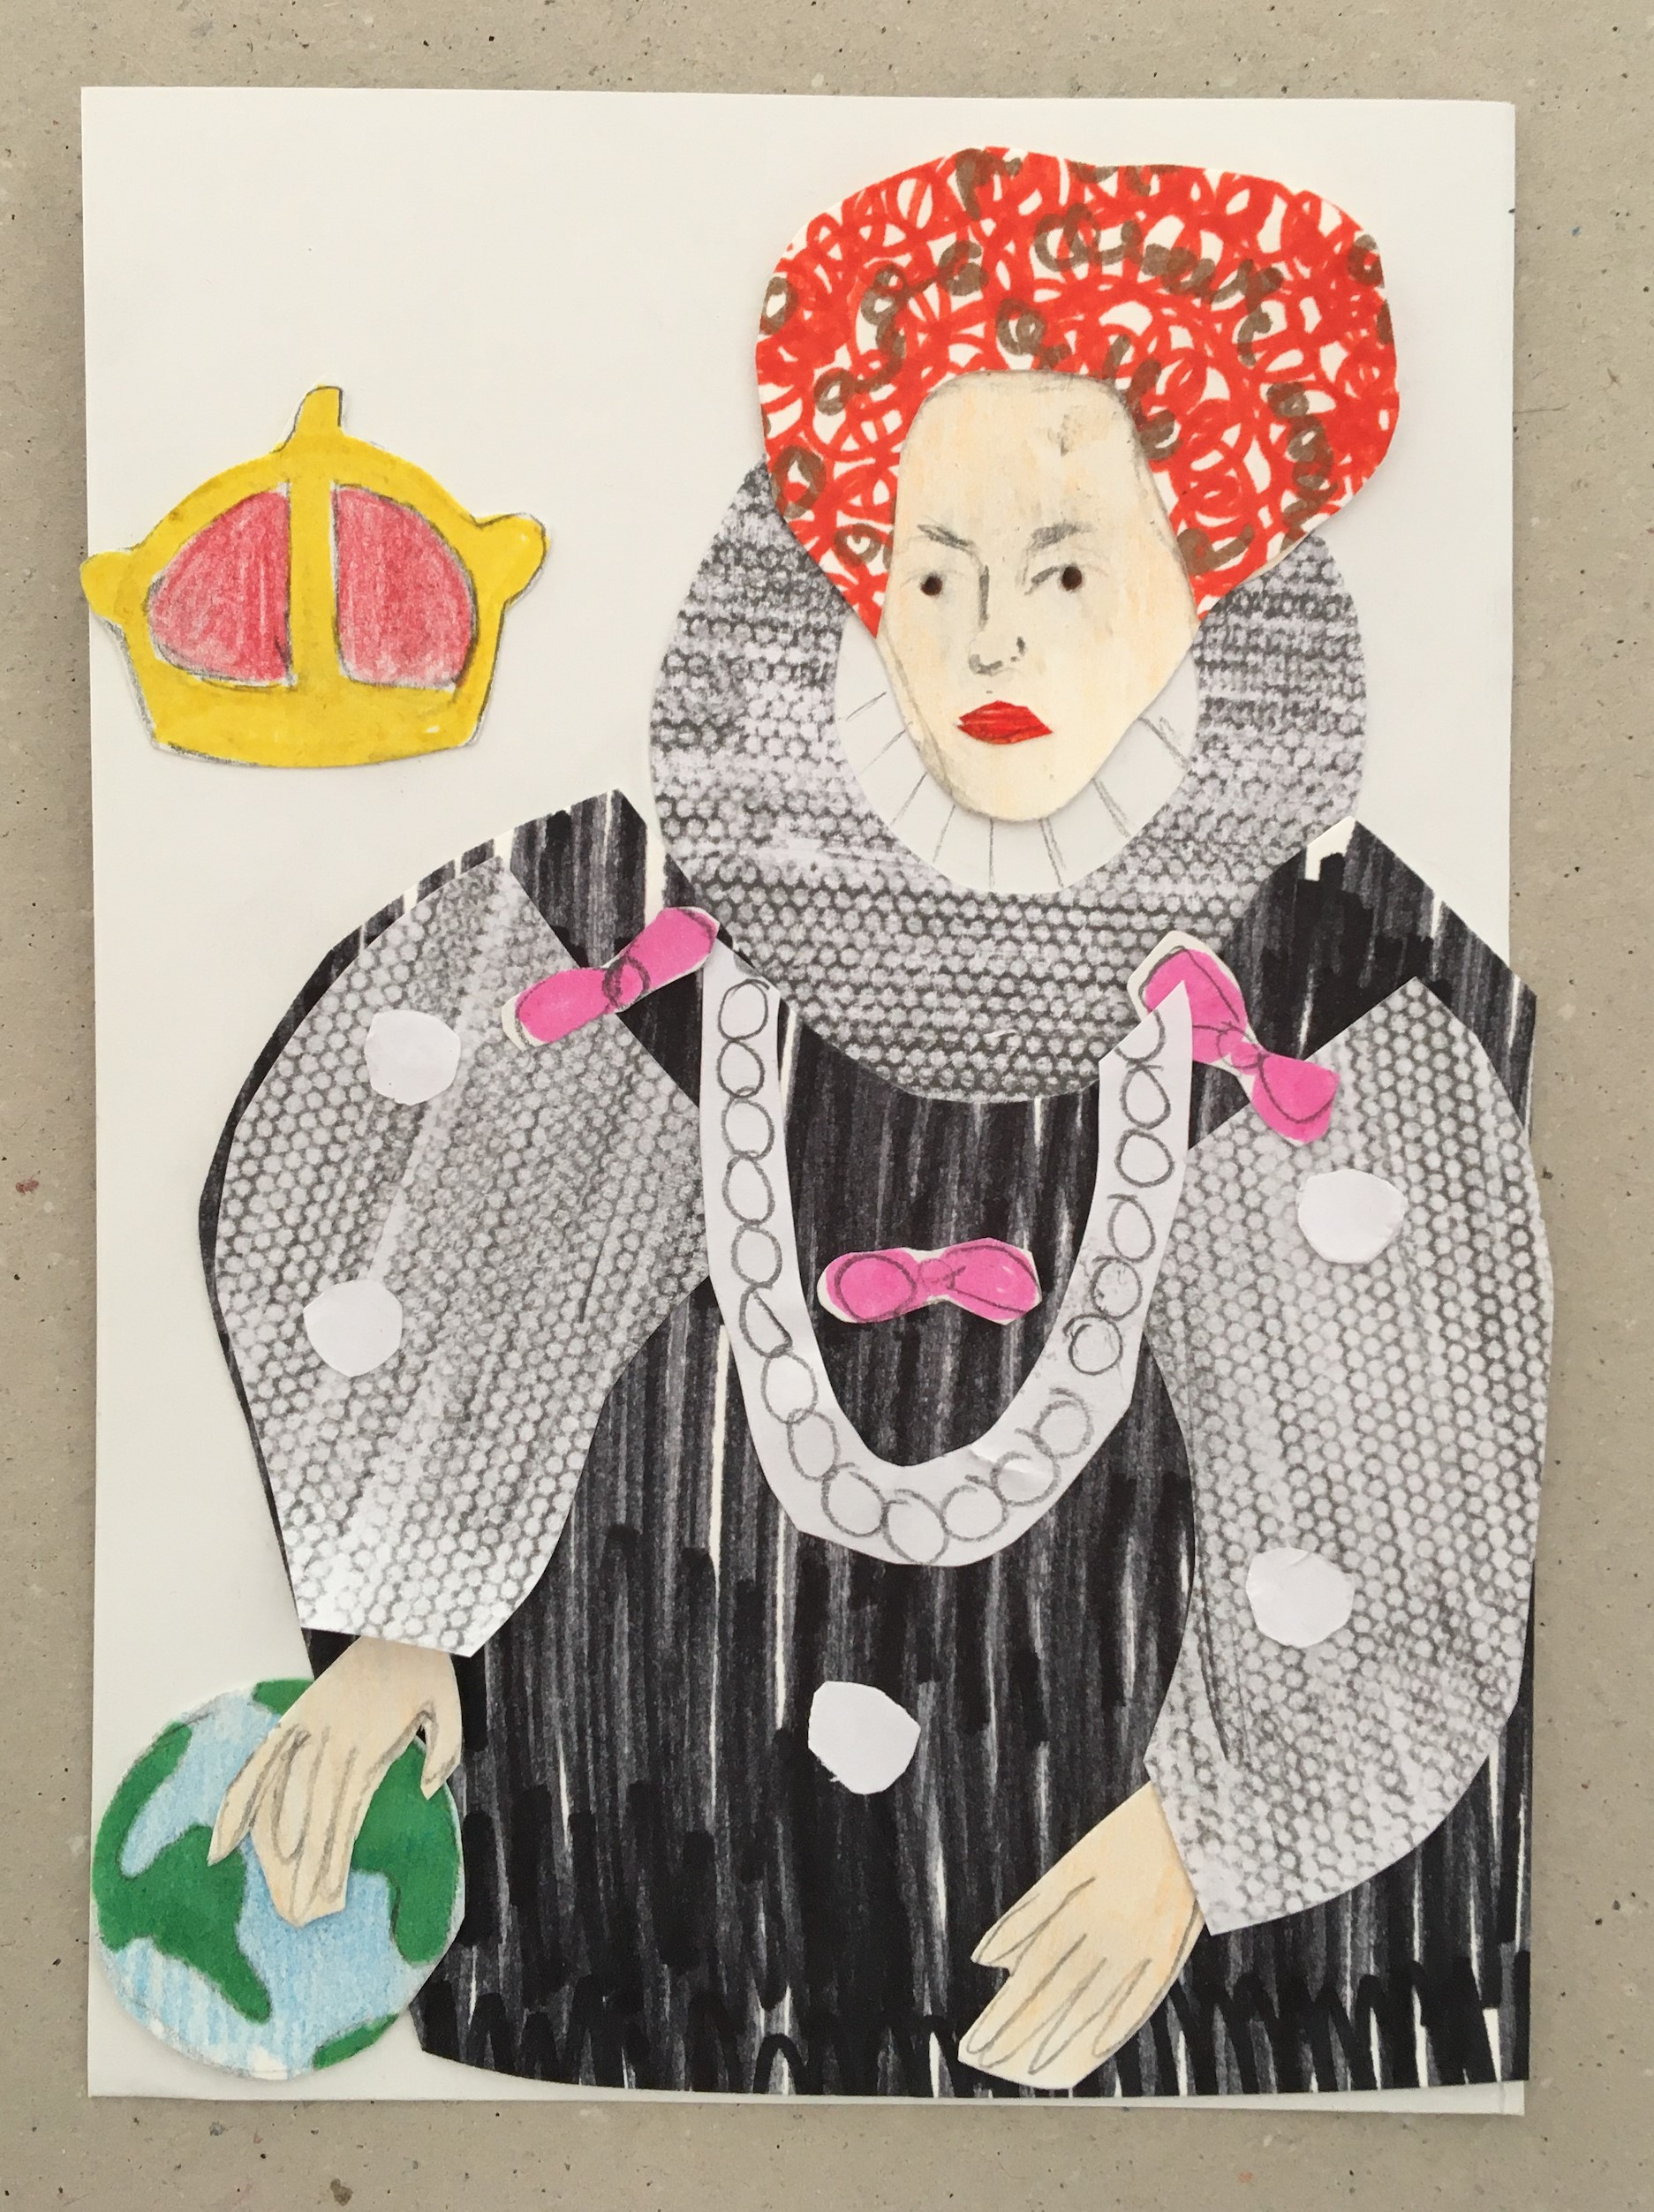 A collage of the Armada Portrait. Elizabeth 1 sits to one side. She wears a black dress with a ruff and pink ribbons. Her hand is on the Earth and a crown is next to her.